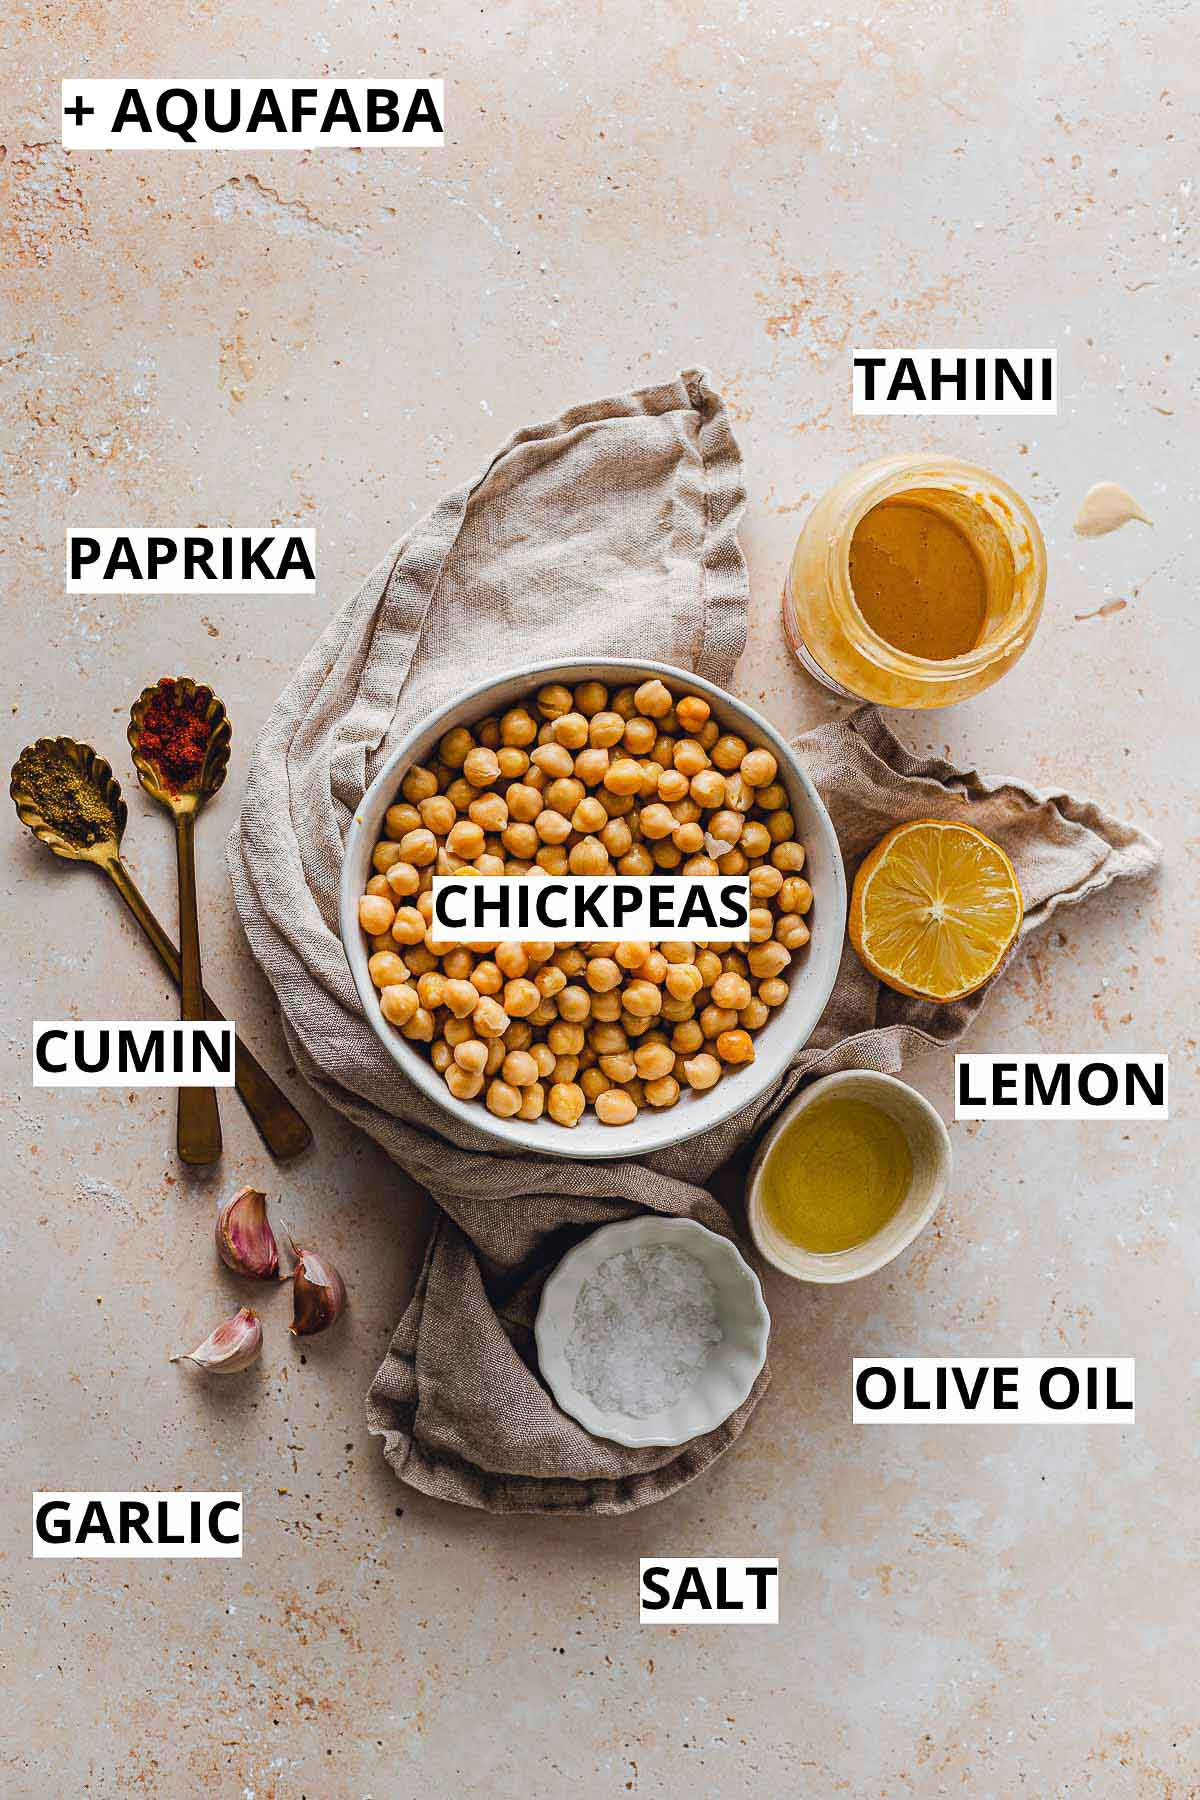 All the ingredients needed to make tahini laid out on a flat surface.